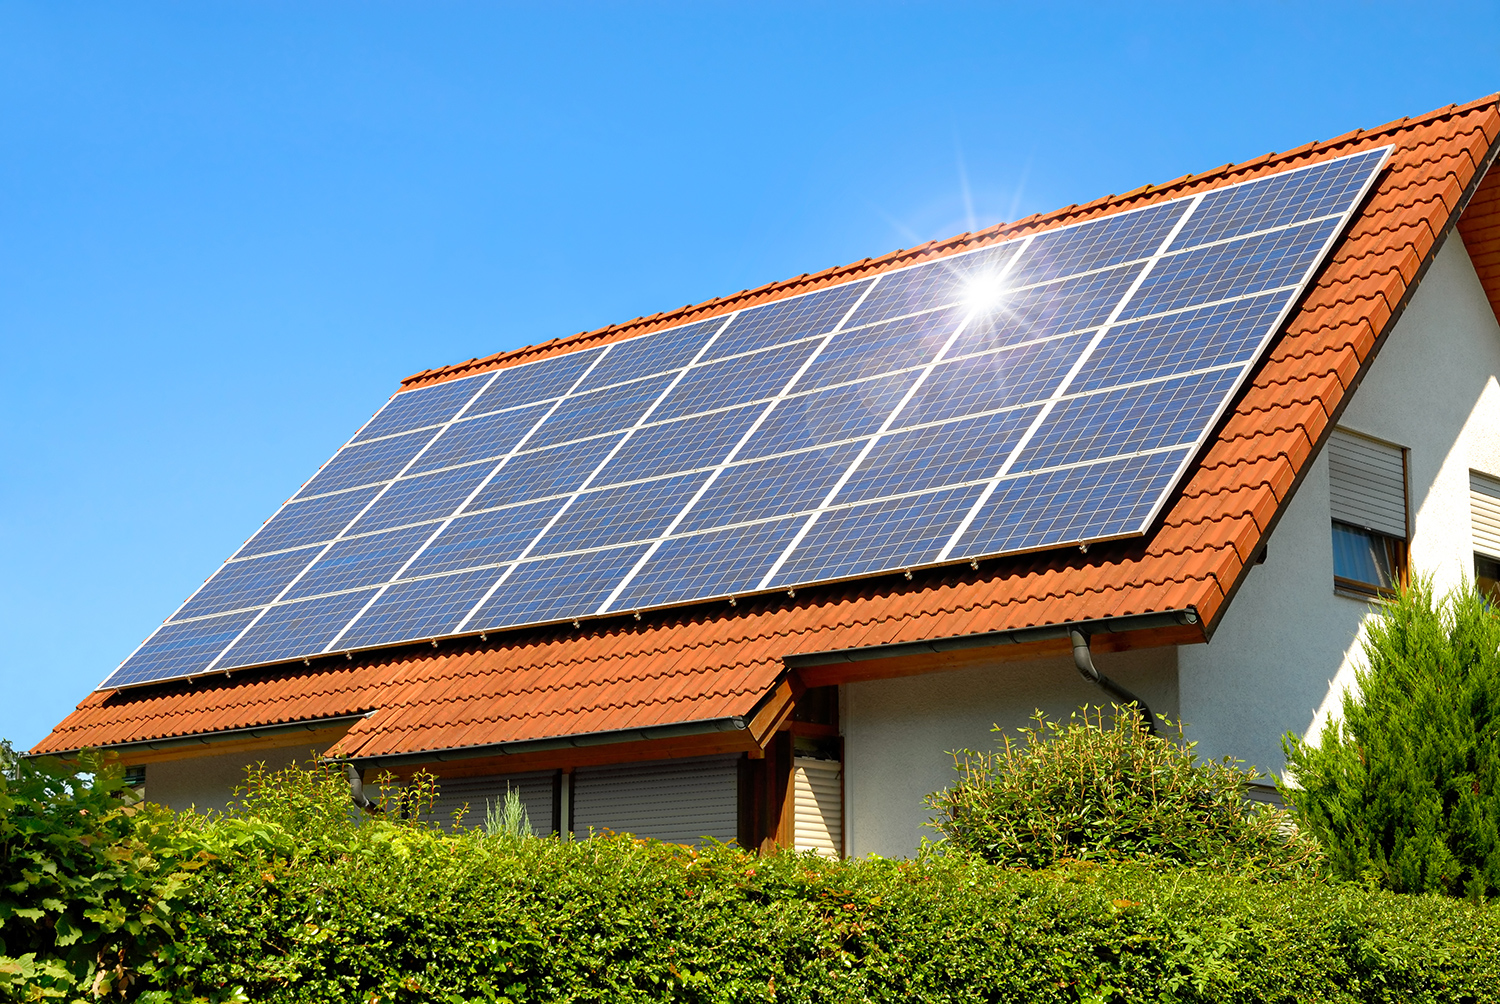 Roof With Solar Panels.